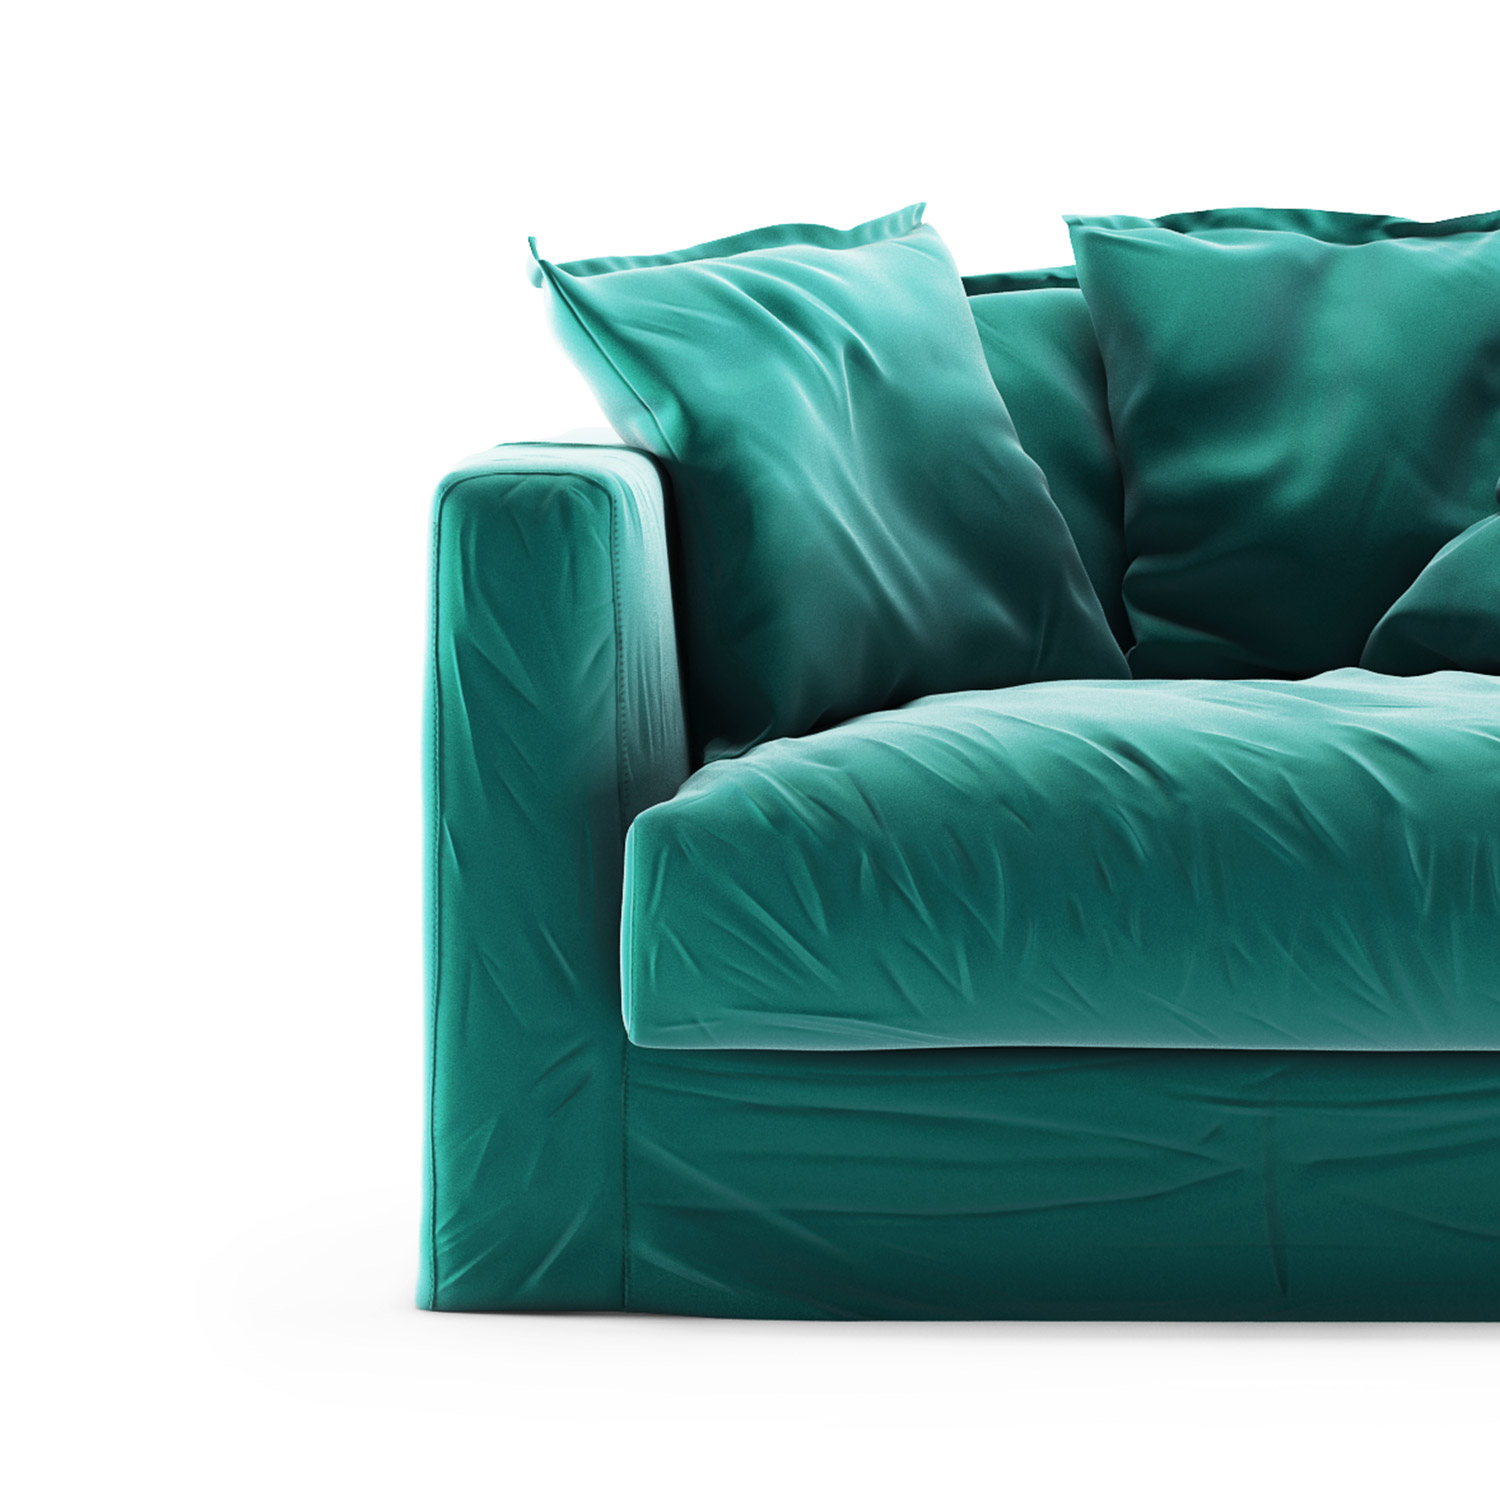 Le Grand Air Loveseat sammet klädsel, Azure